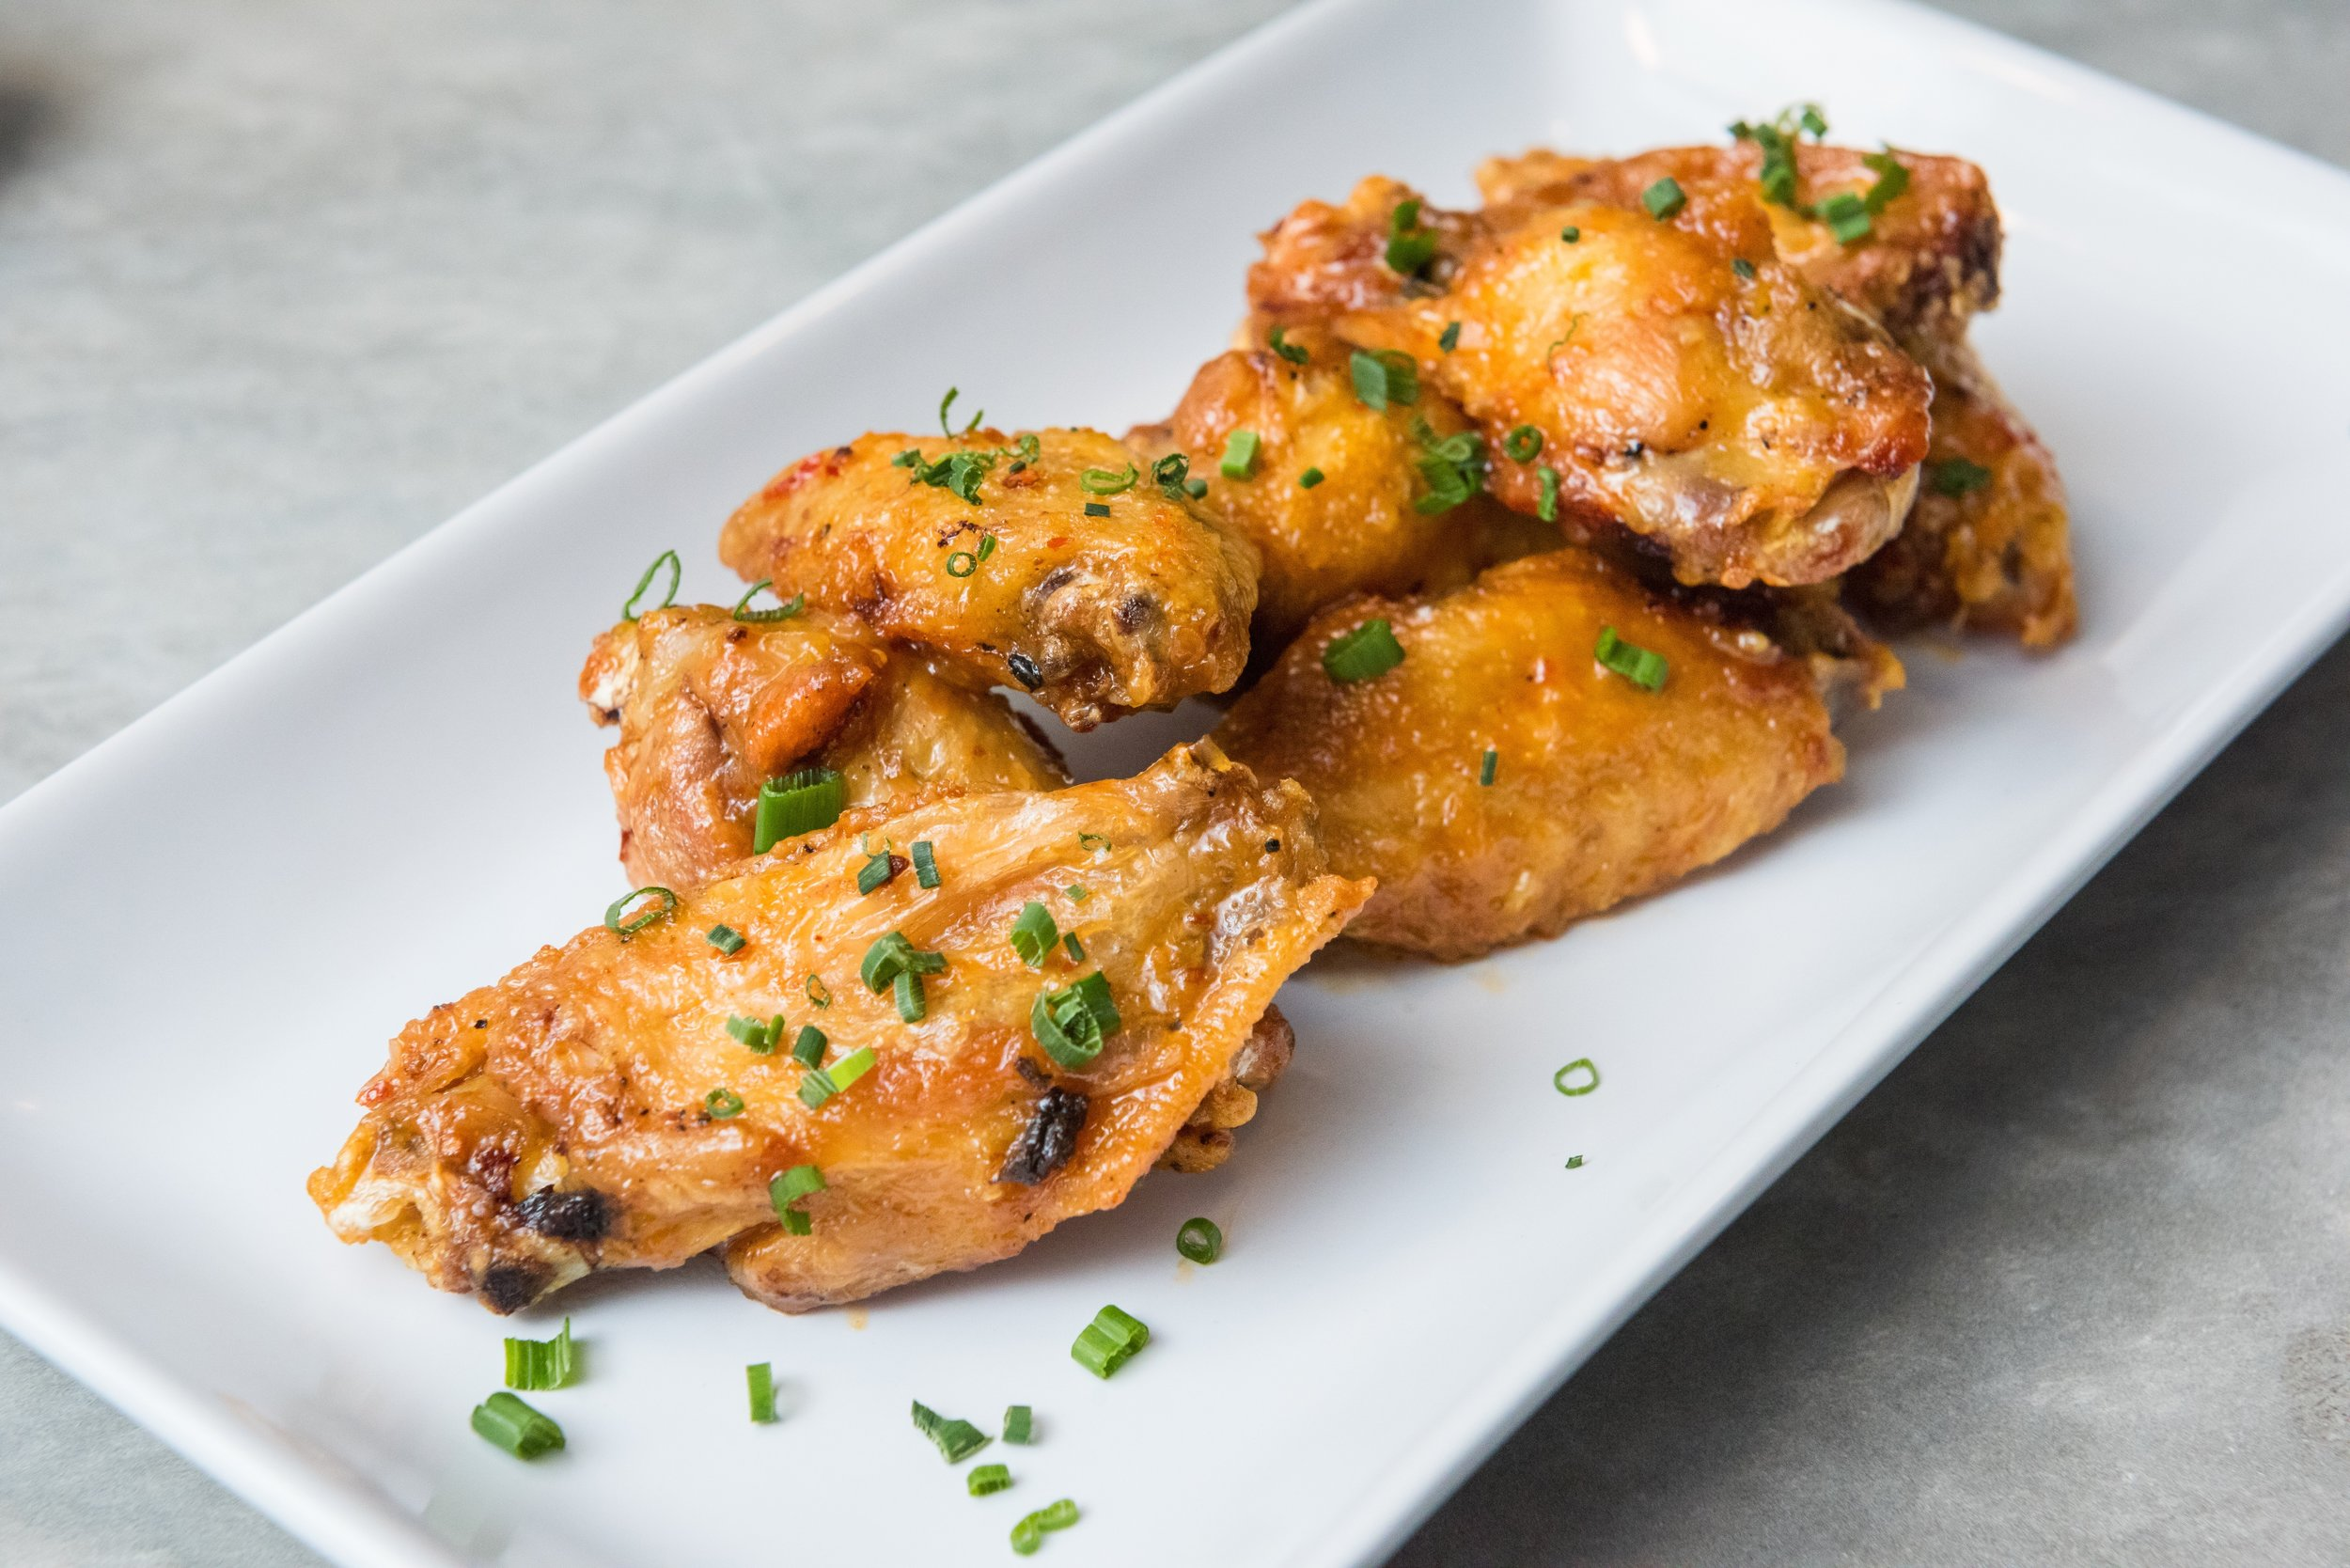 Oven Roasted Chicken Wings appetizer at Thirsty Mermaid